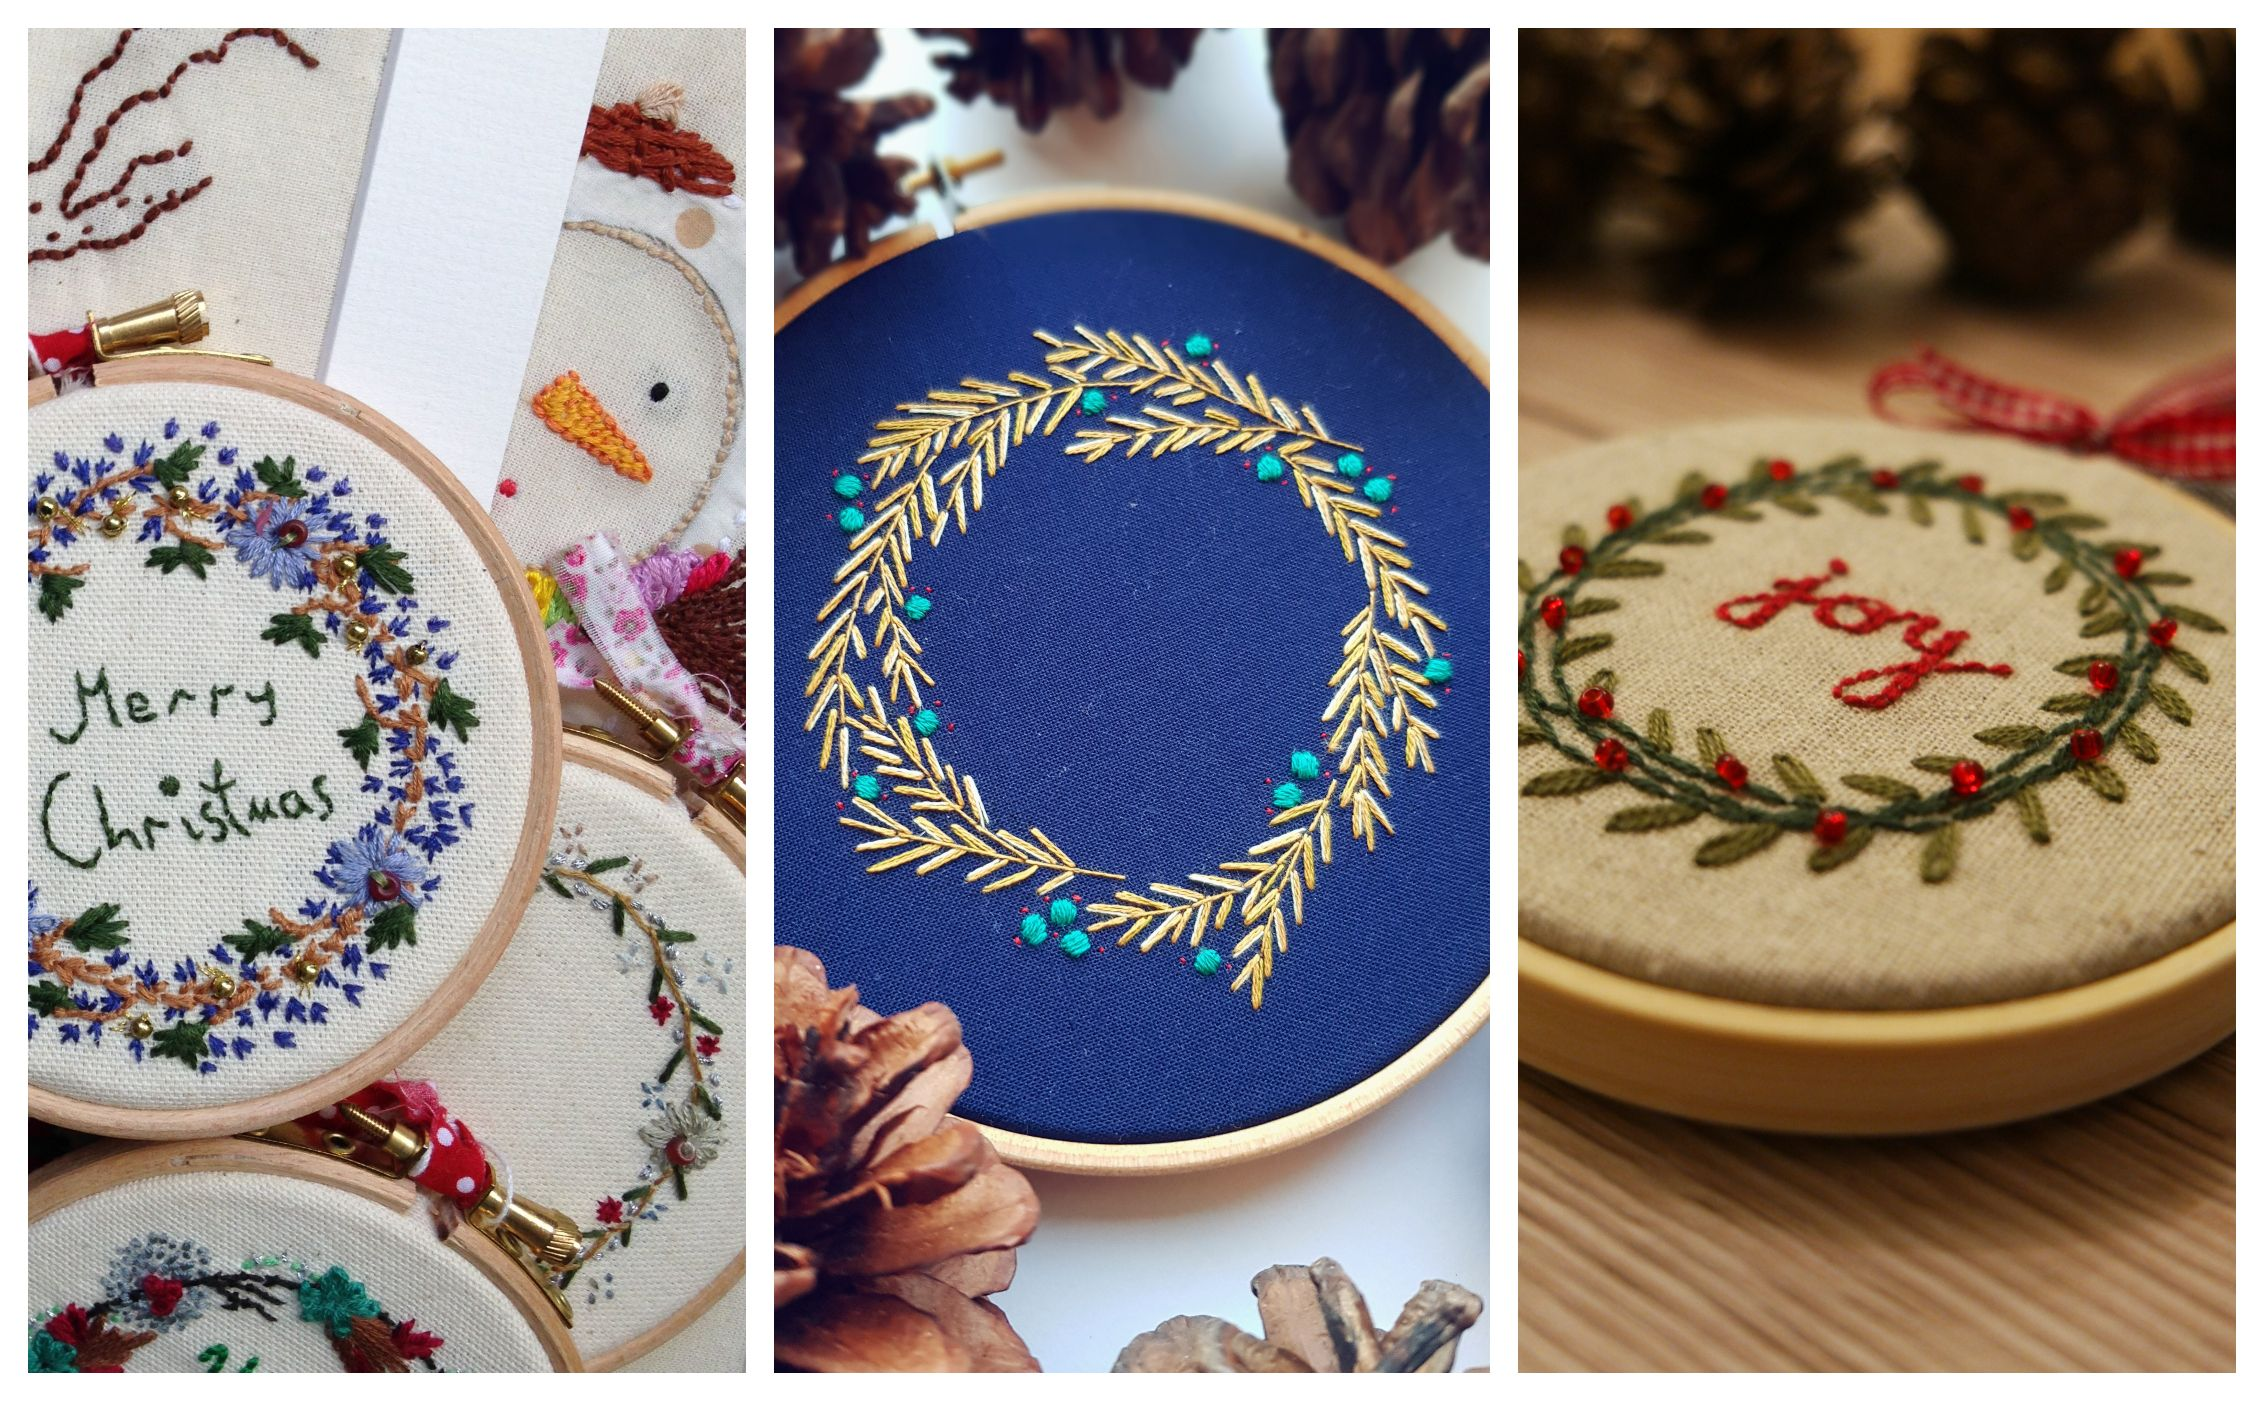 How to make a Christmas wreath embroidery hoop in a few simple steps